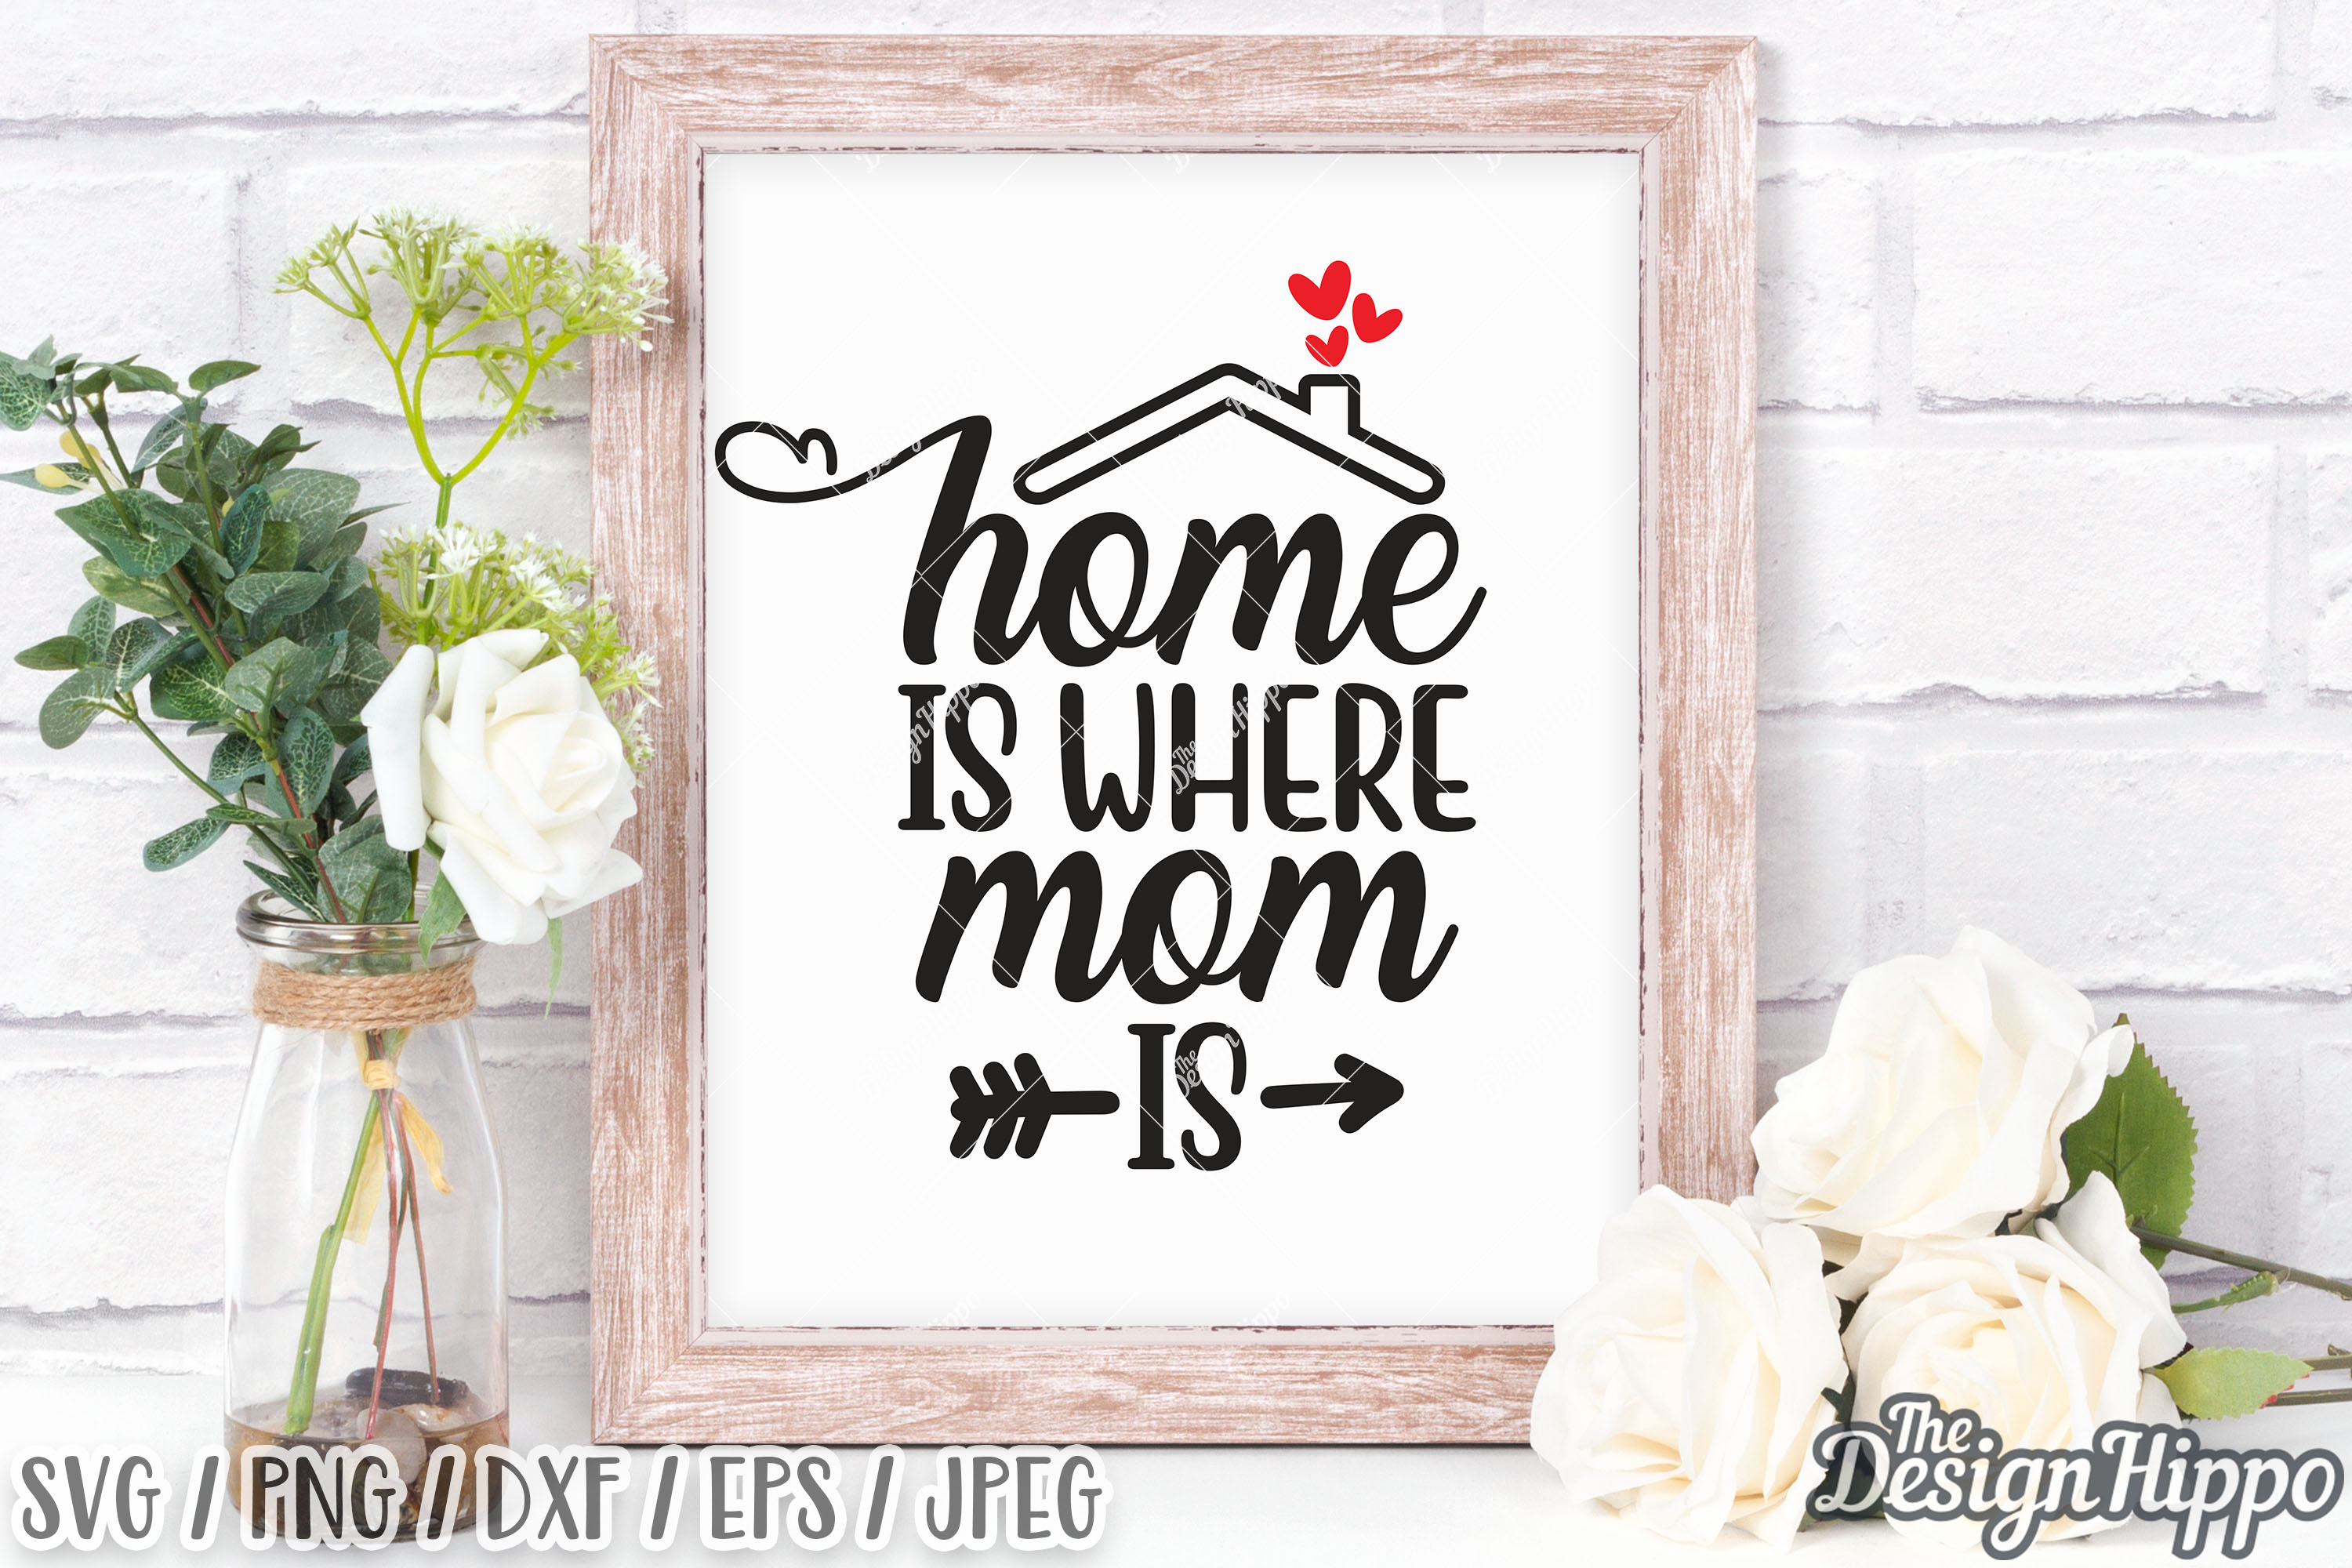 Mom Quotes SVG Bundle, 20 Designs, SVG PNG DXF Cutting Files example image 7